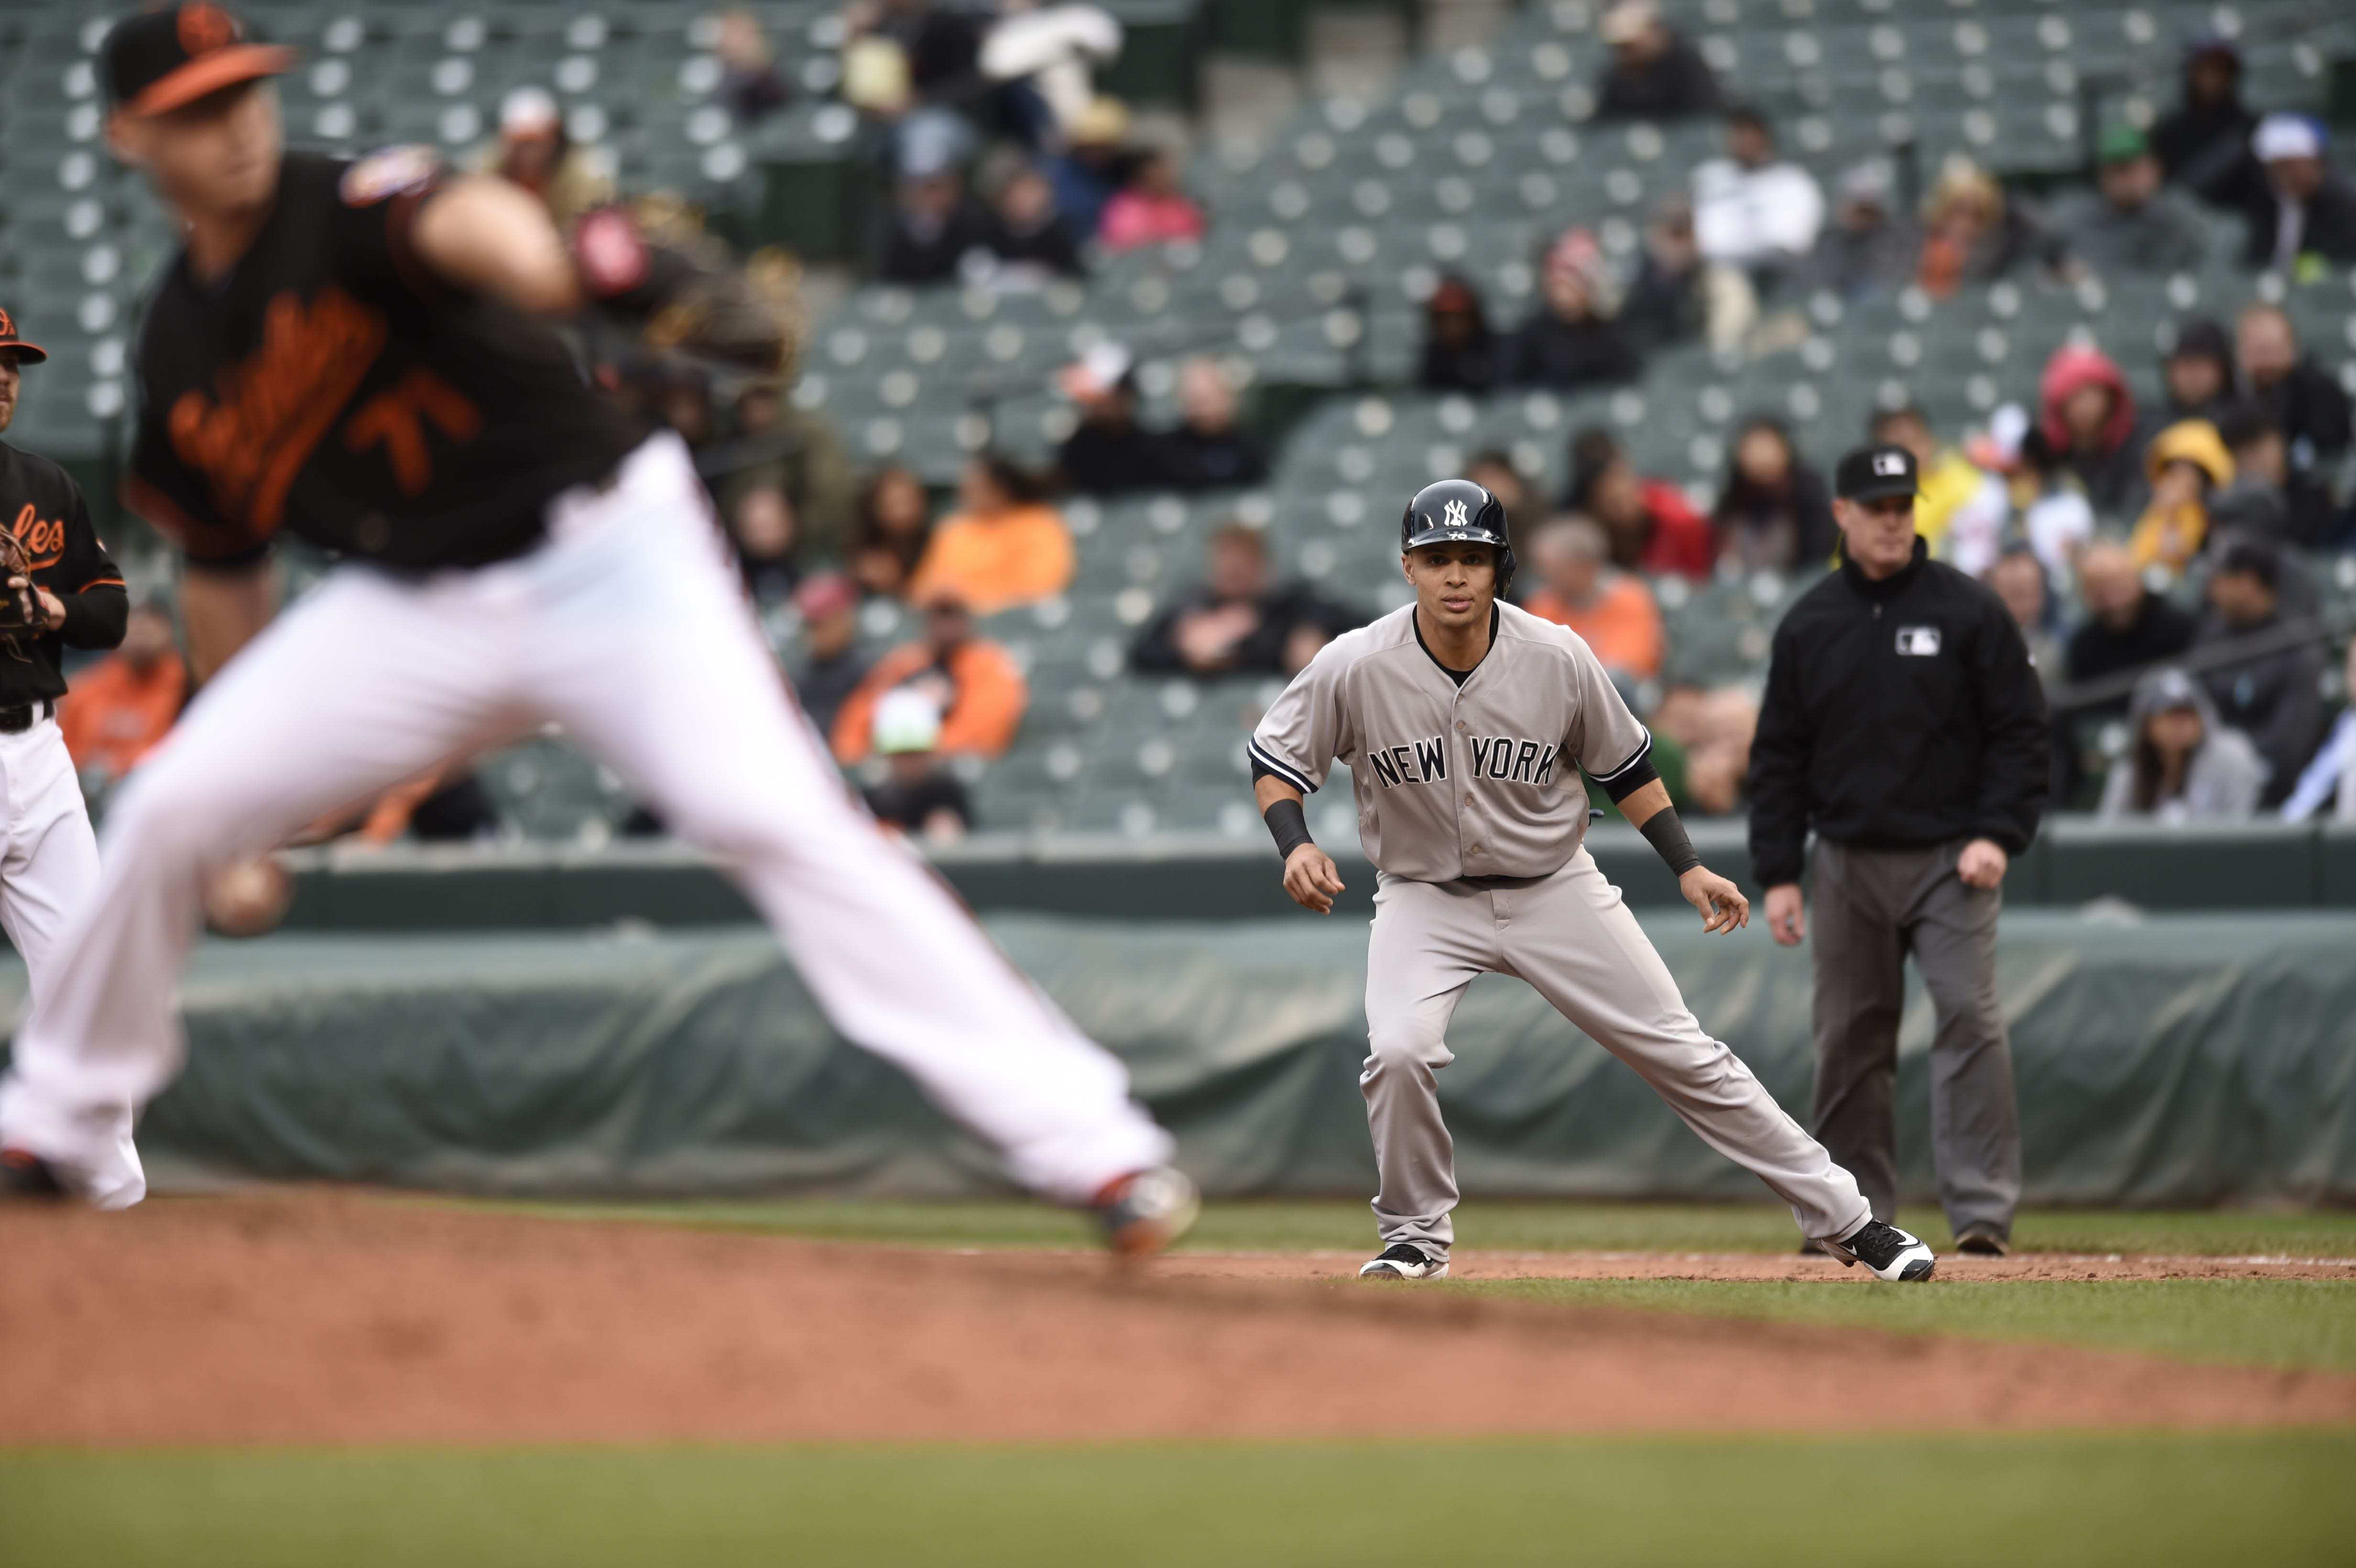 New York Yankees Rico Noel takes a lead off first base after hitting a single against the Baltimore Orioles in the  first baseball game of a double header in Baltimore, Saturday, Oct. 3, 2015. (AP Photo/Gail Burton)